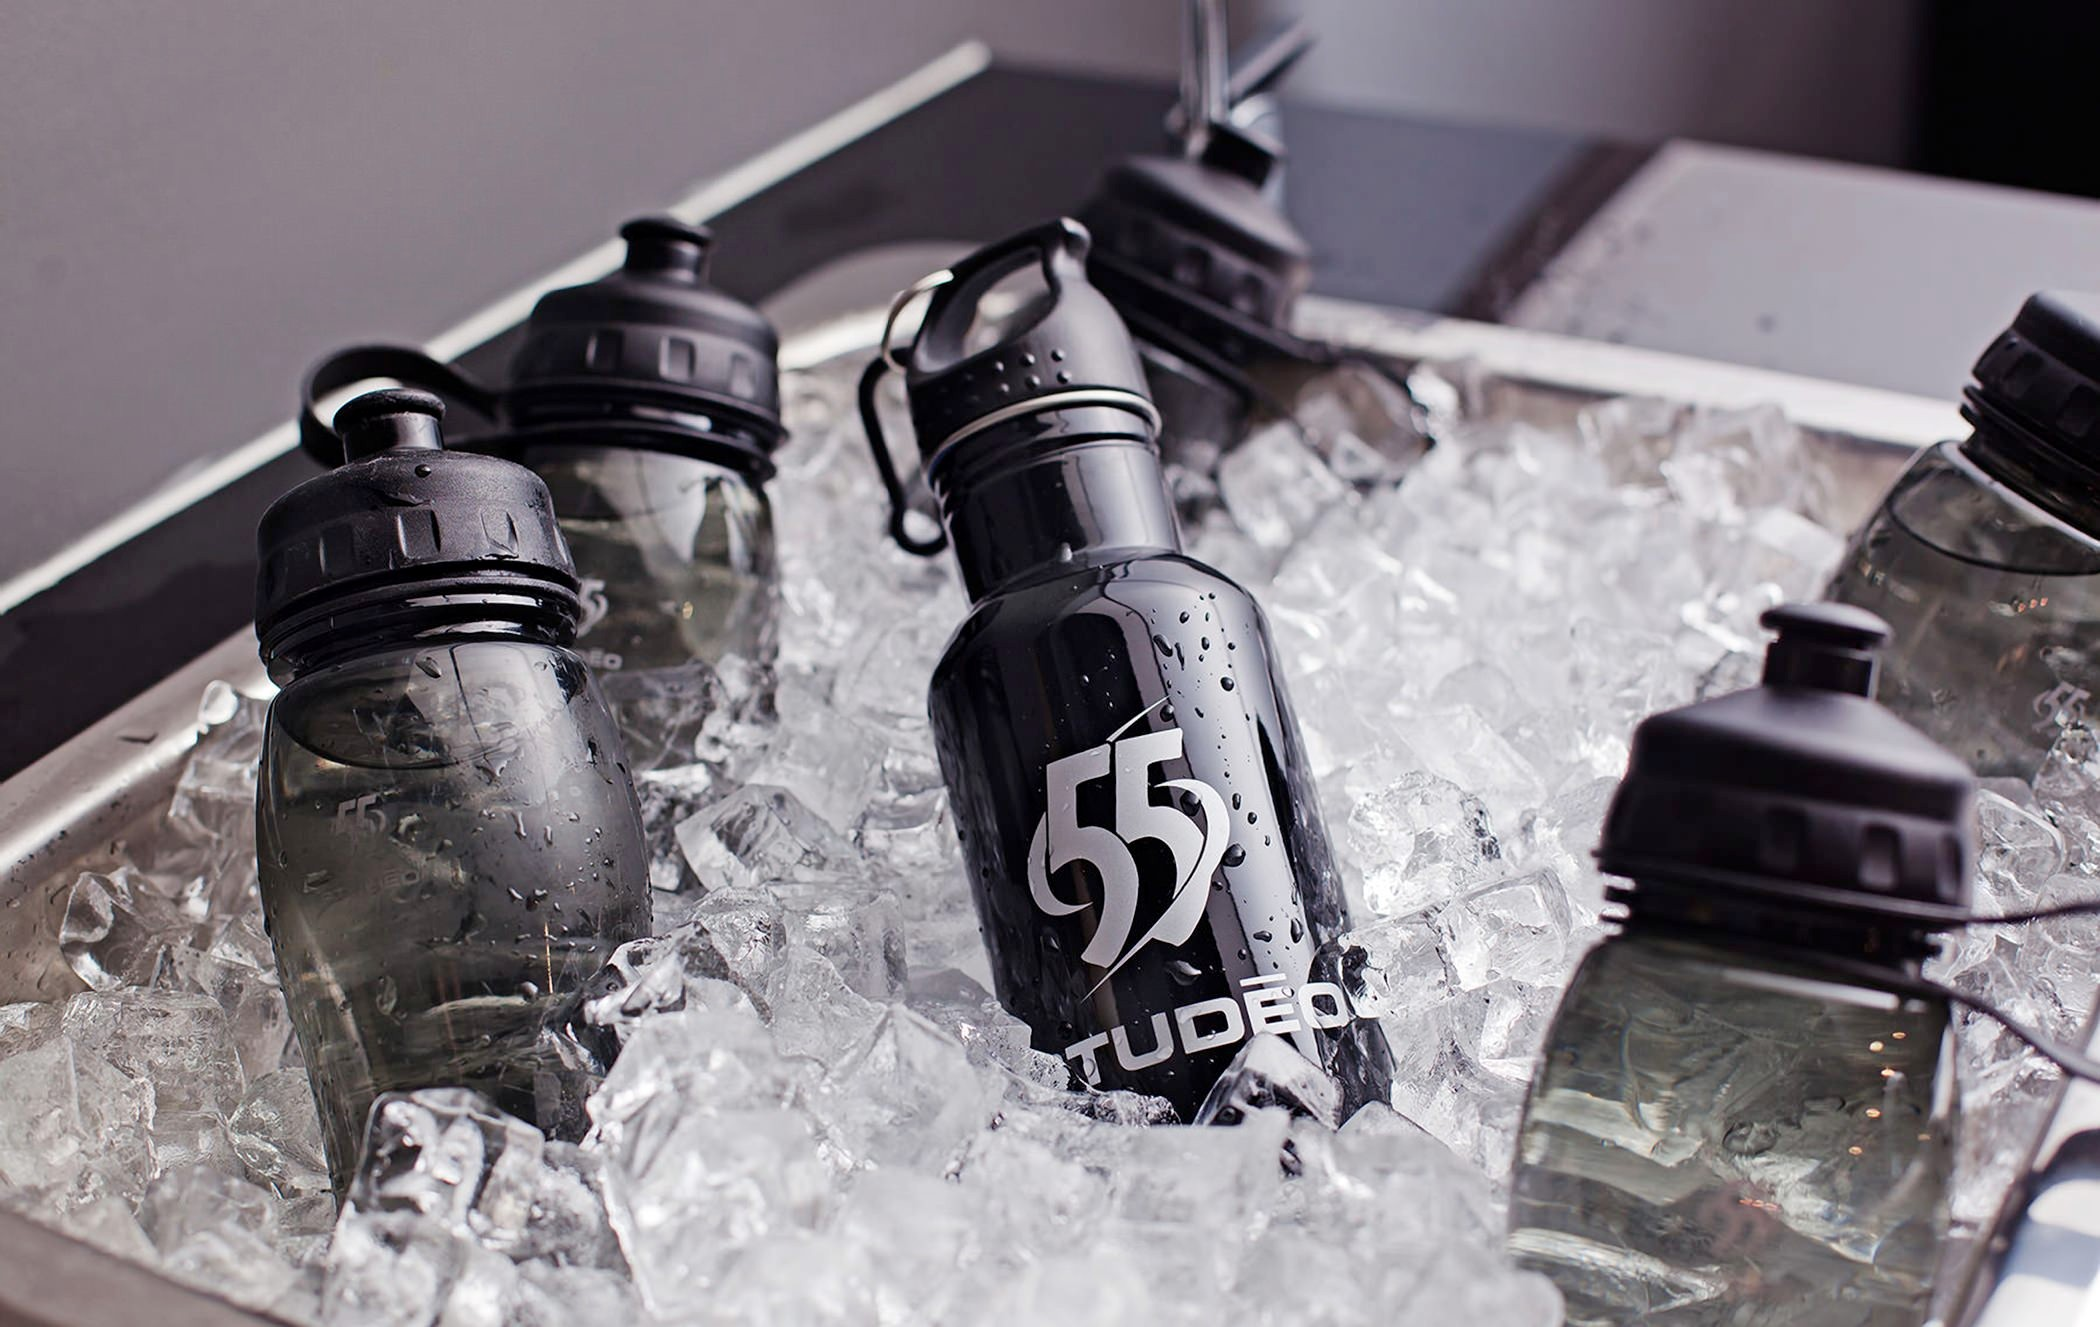 Studeo55-CrossFit-Water Bottles